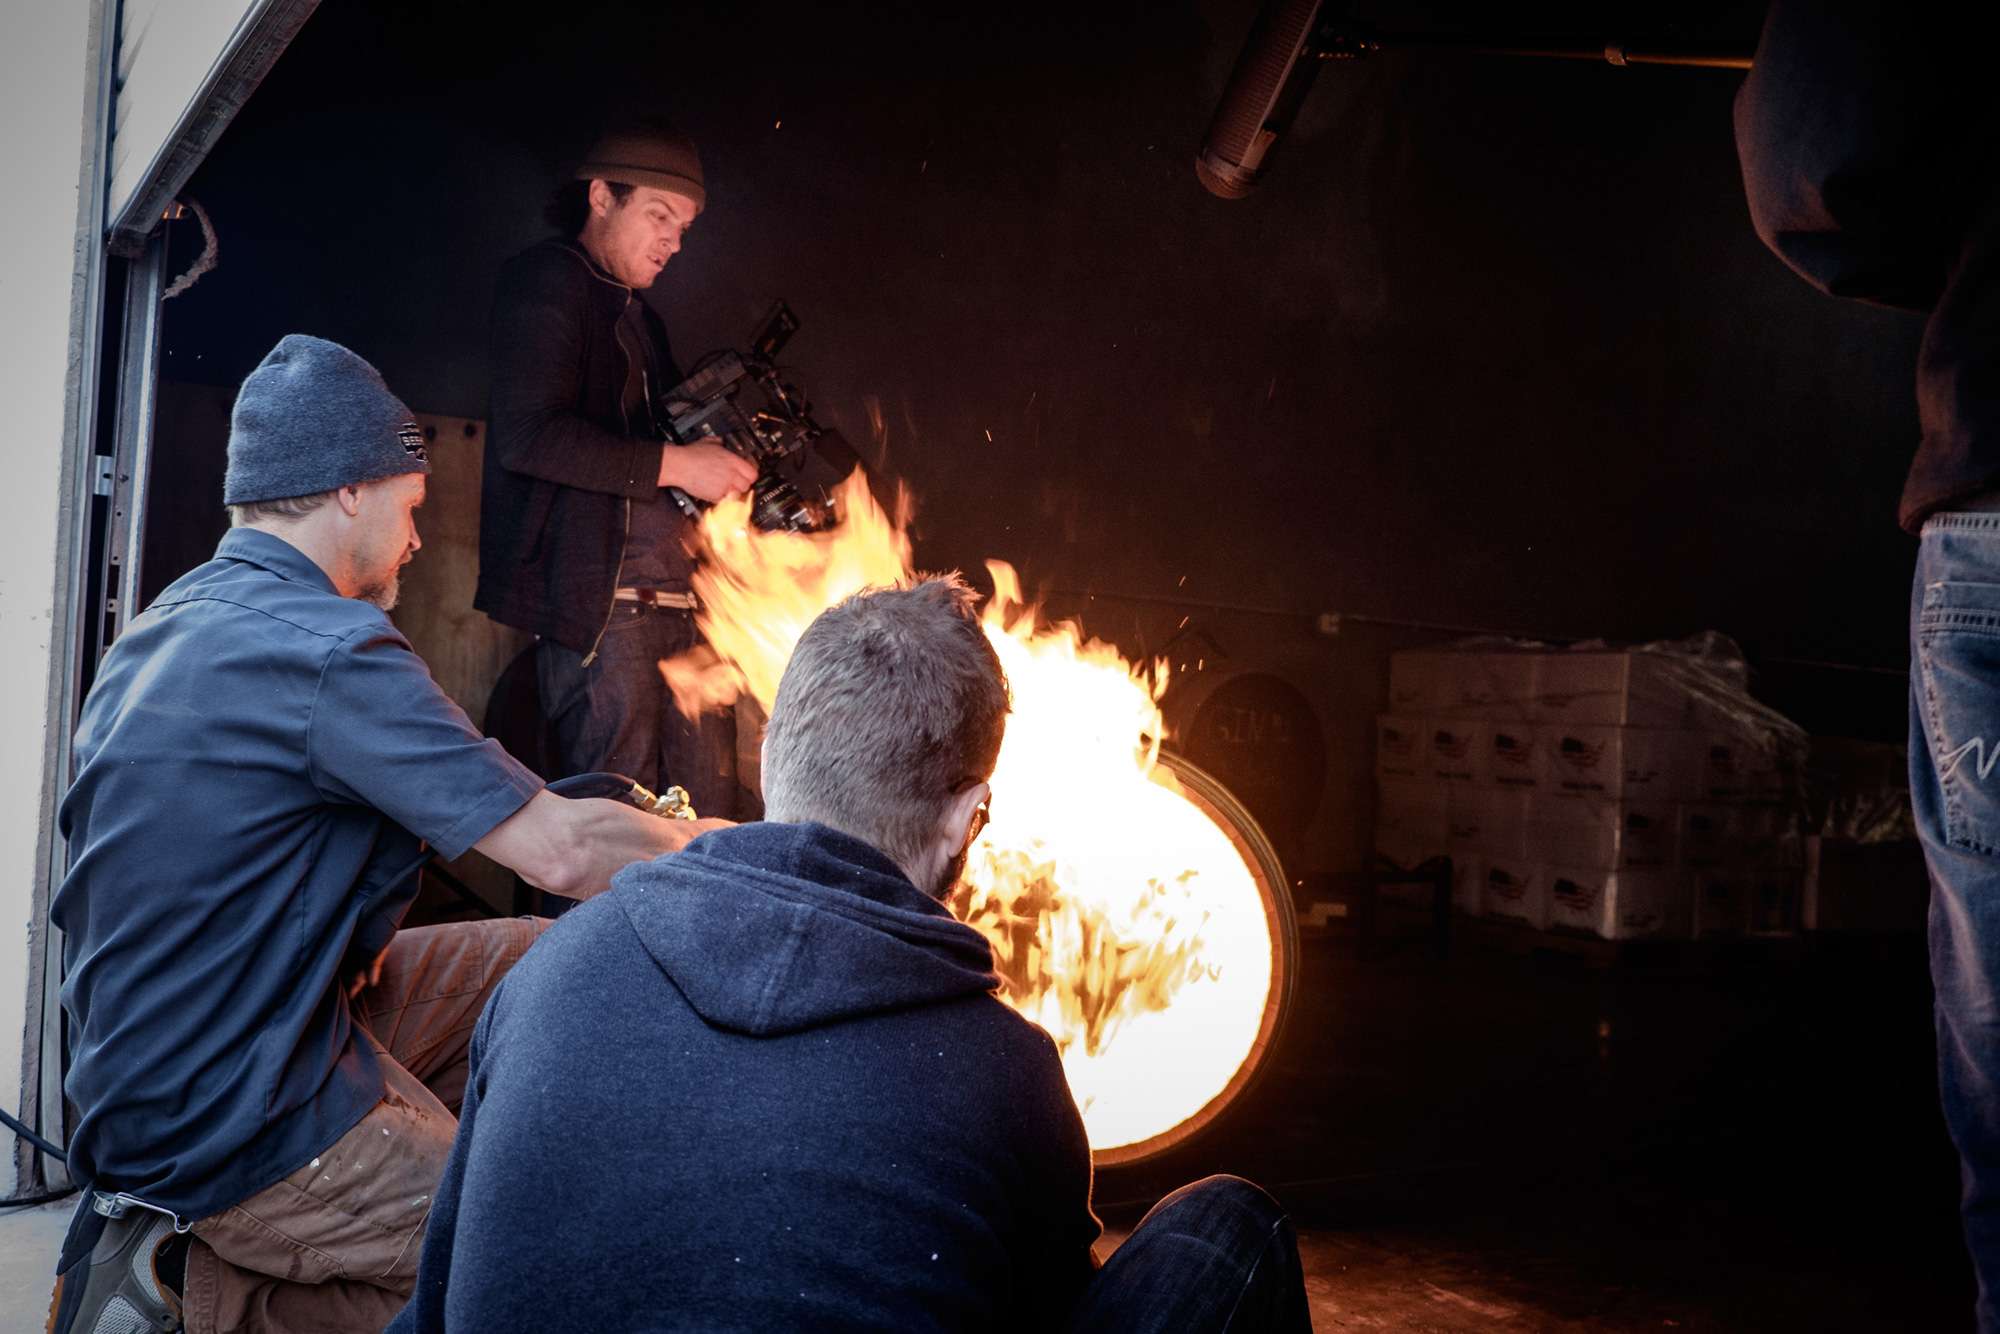 Beehive Distilling Small Batch Craft Gin Salt Lake City Utah 9b